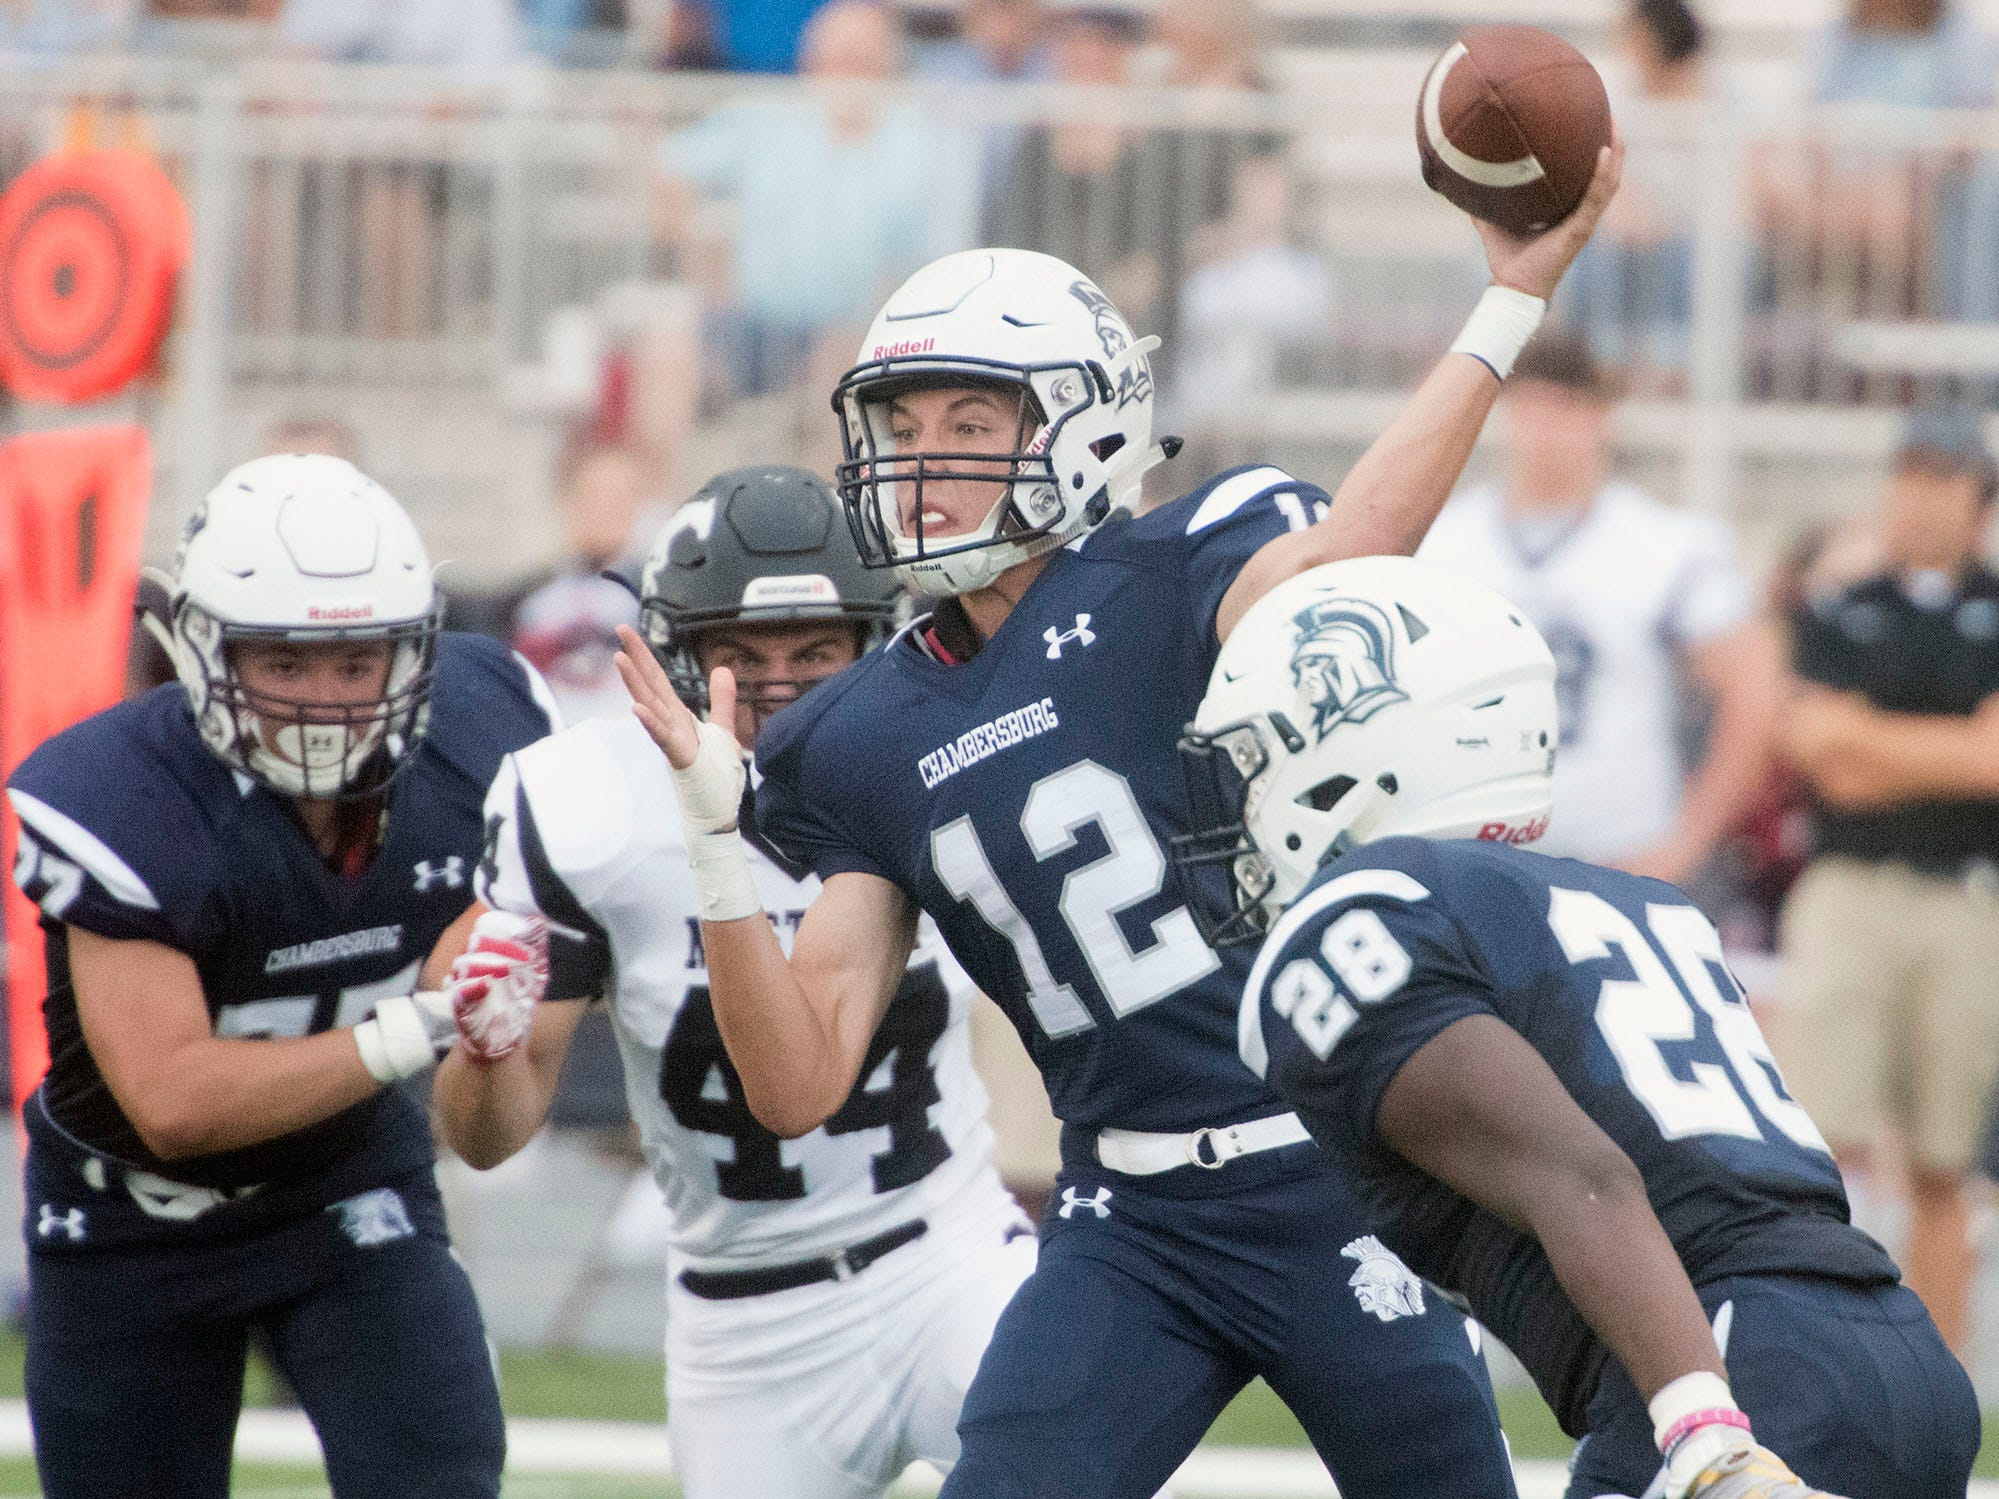 Chambersburg's Brady Stumbaugh drops back to pass for the Trojans. Chambersburg defeated South Western 51-26 in football on Friday, Aug. 31, 2018.